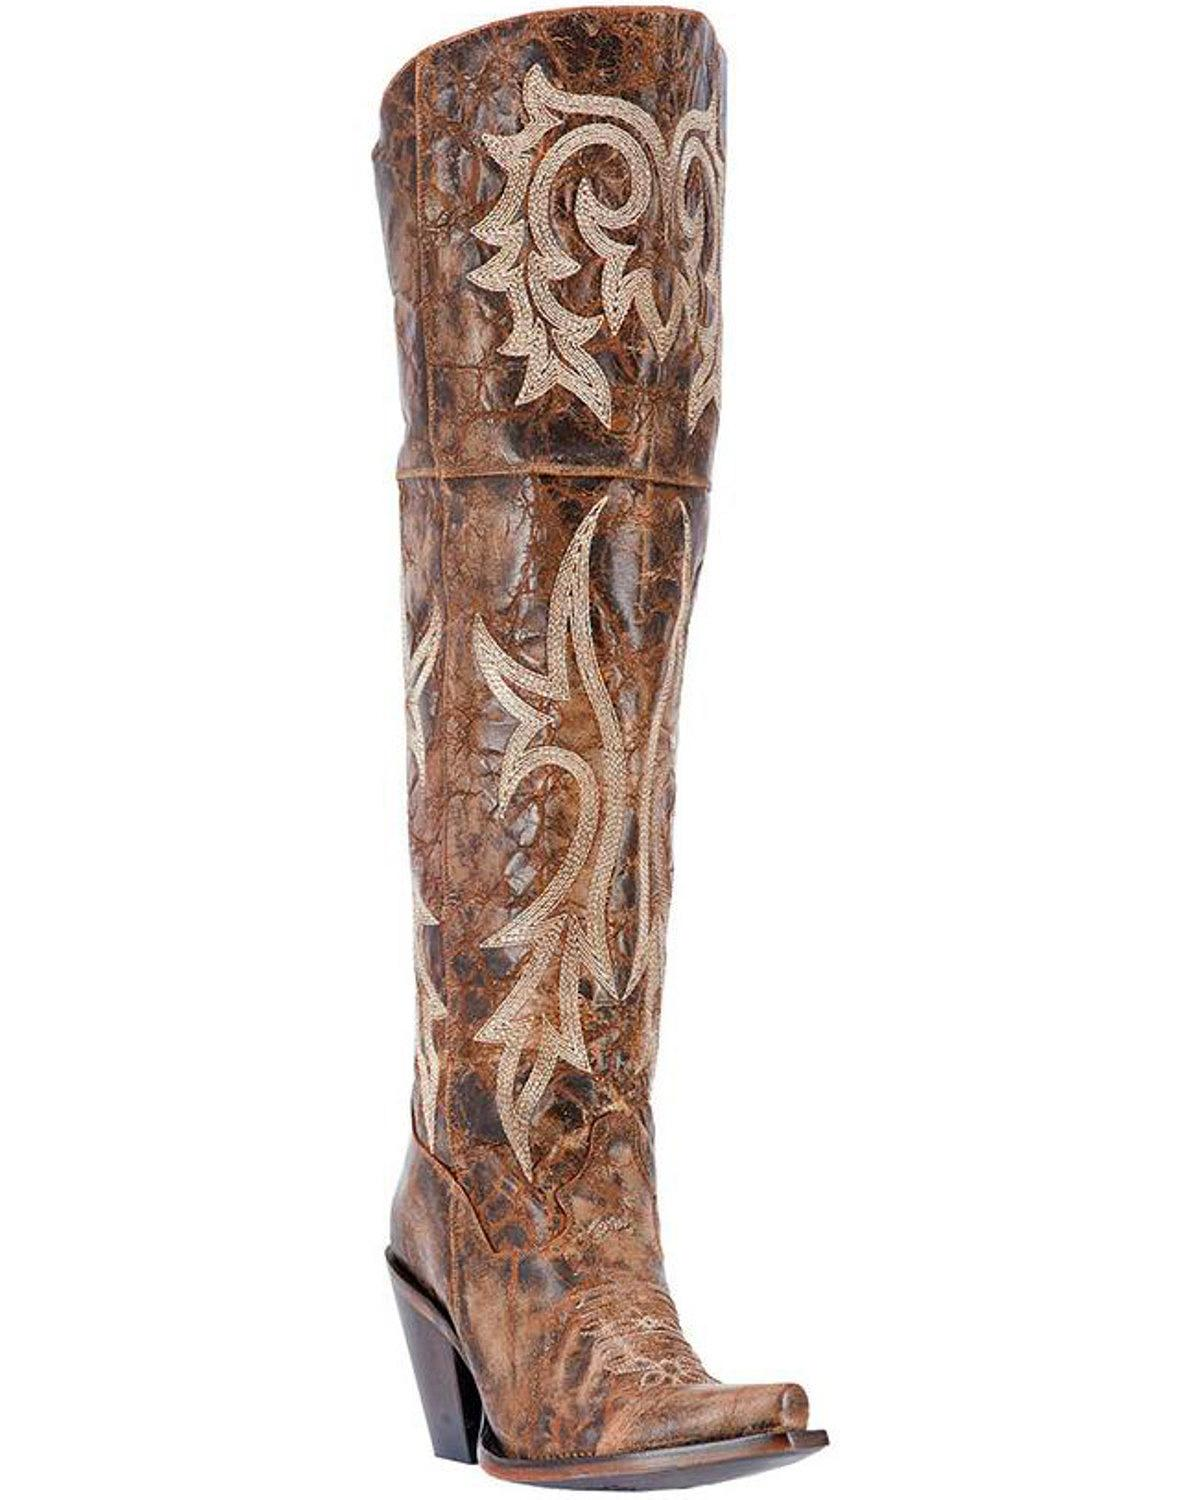 be1d31cc2d2 Women's Tall Boots - Boot Barn